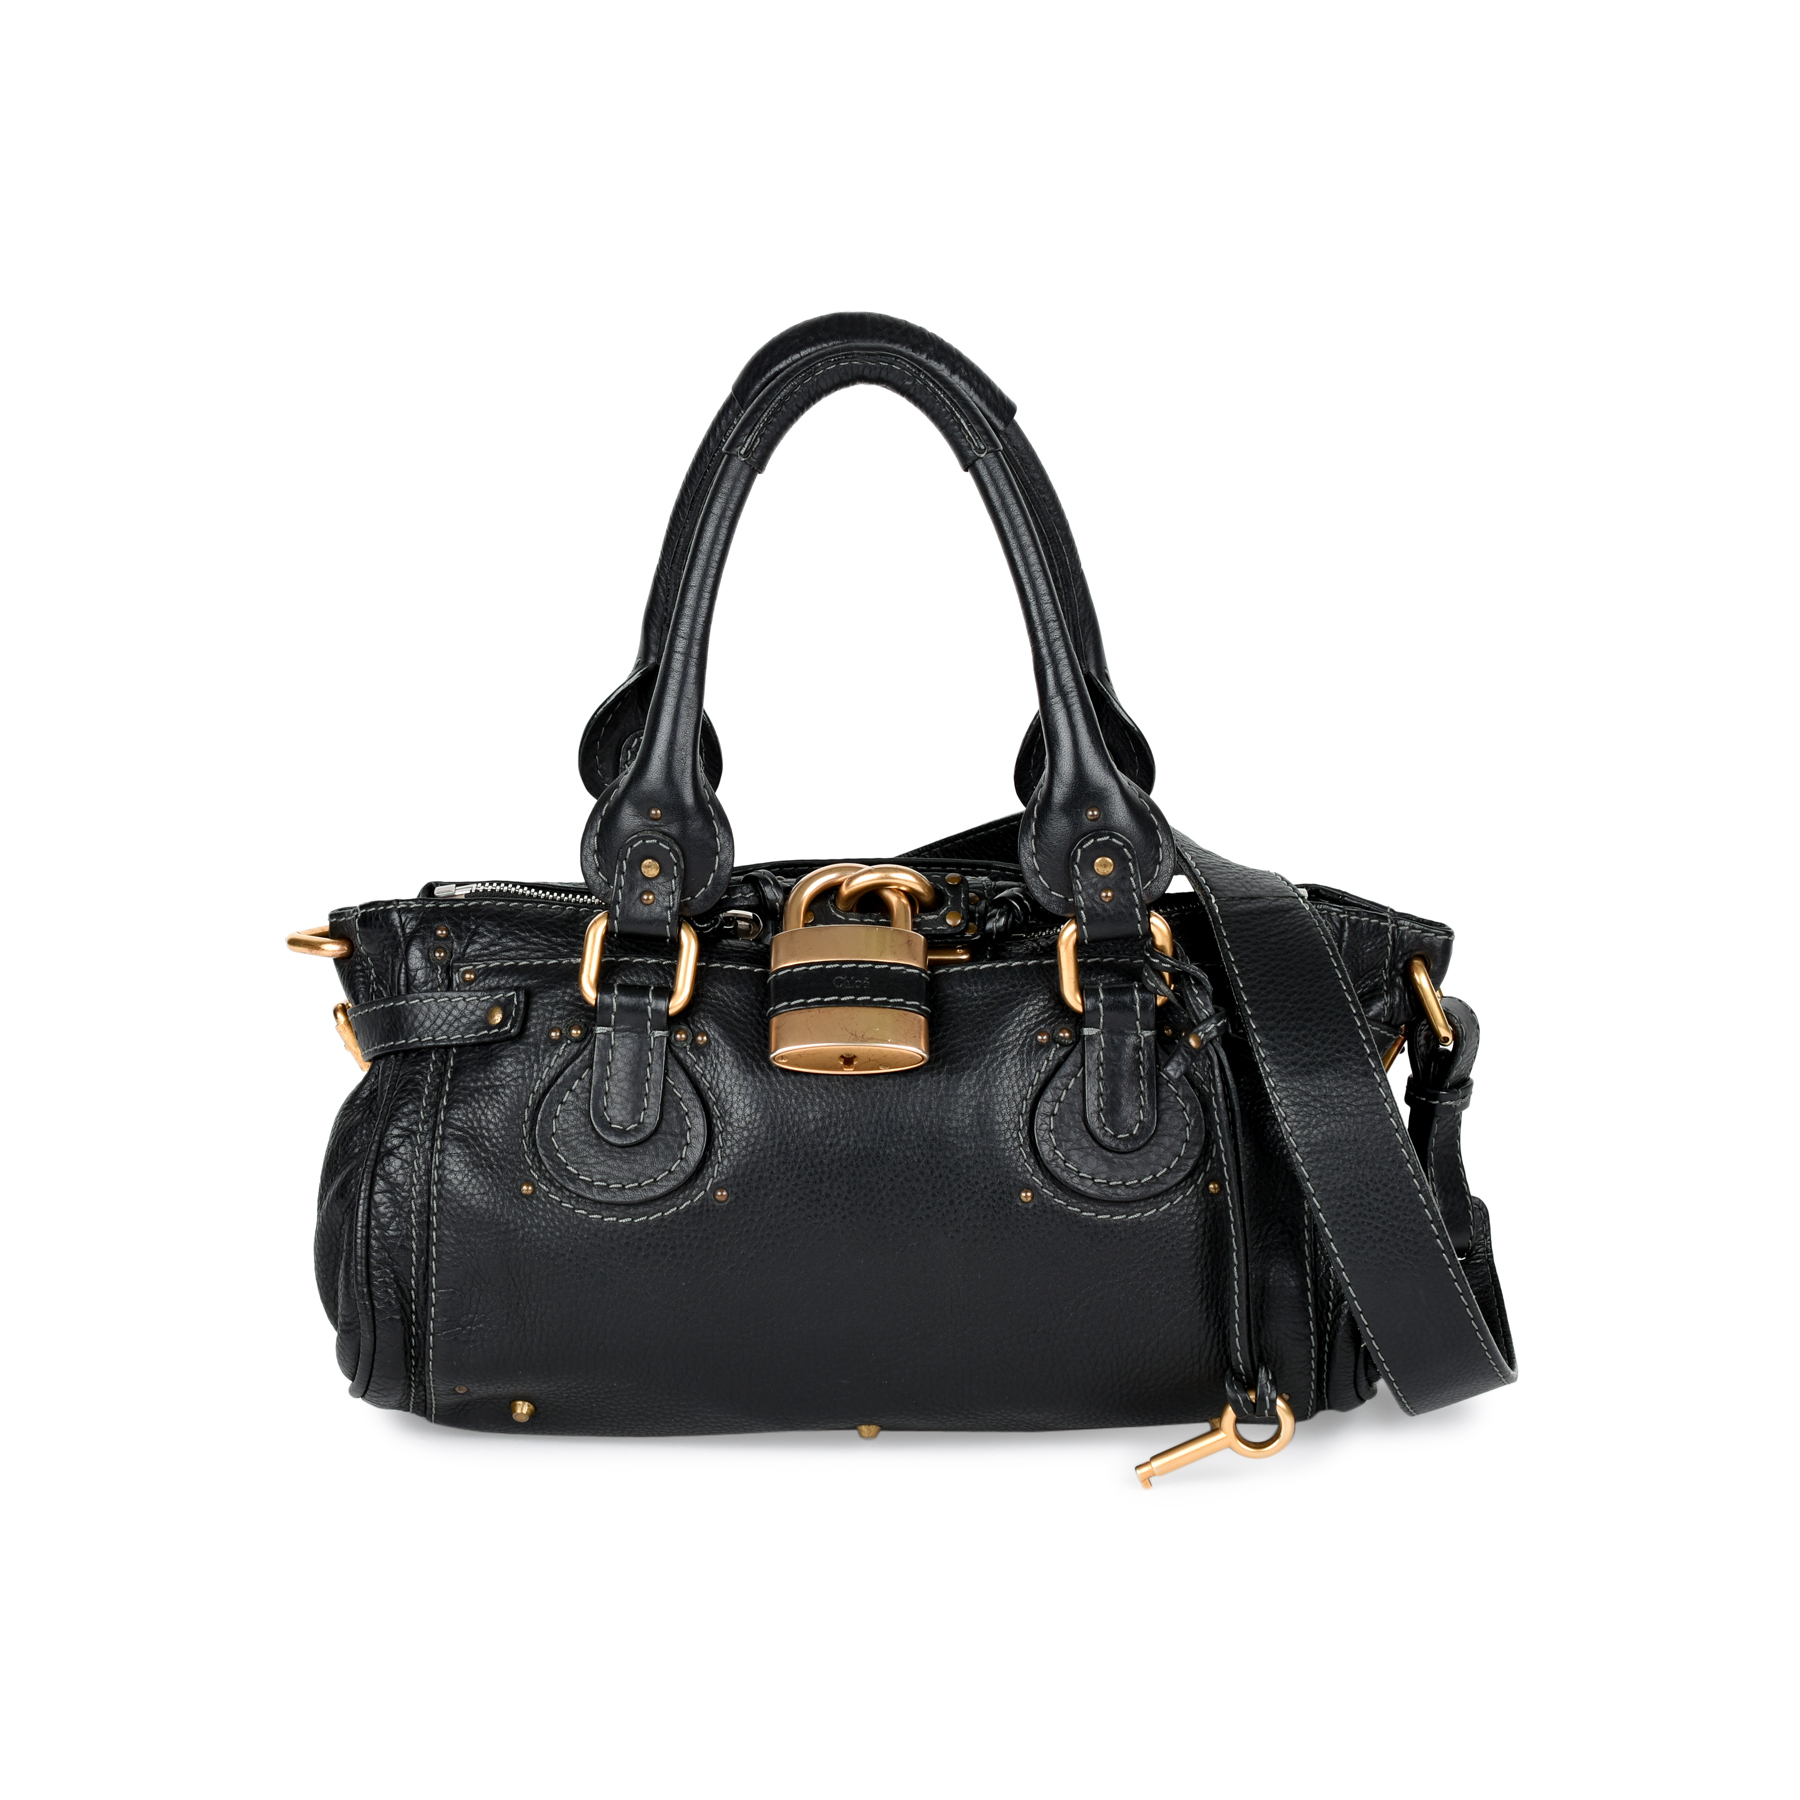 Authentic Pre Owned Chloé Paddington Bag Pss 449 00004 The Fifth Collection